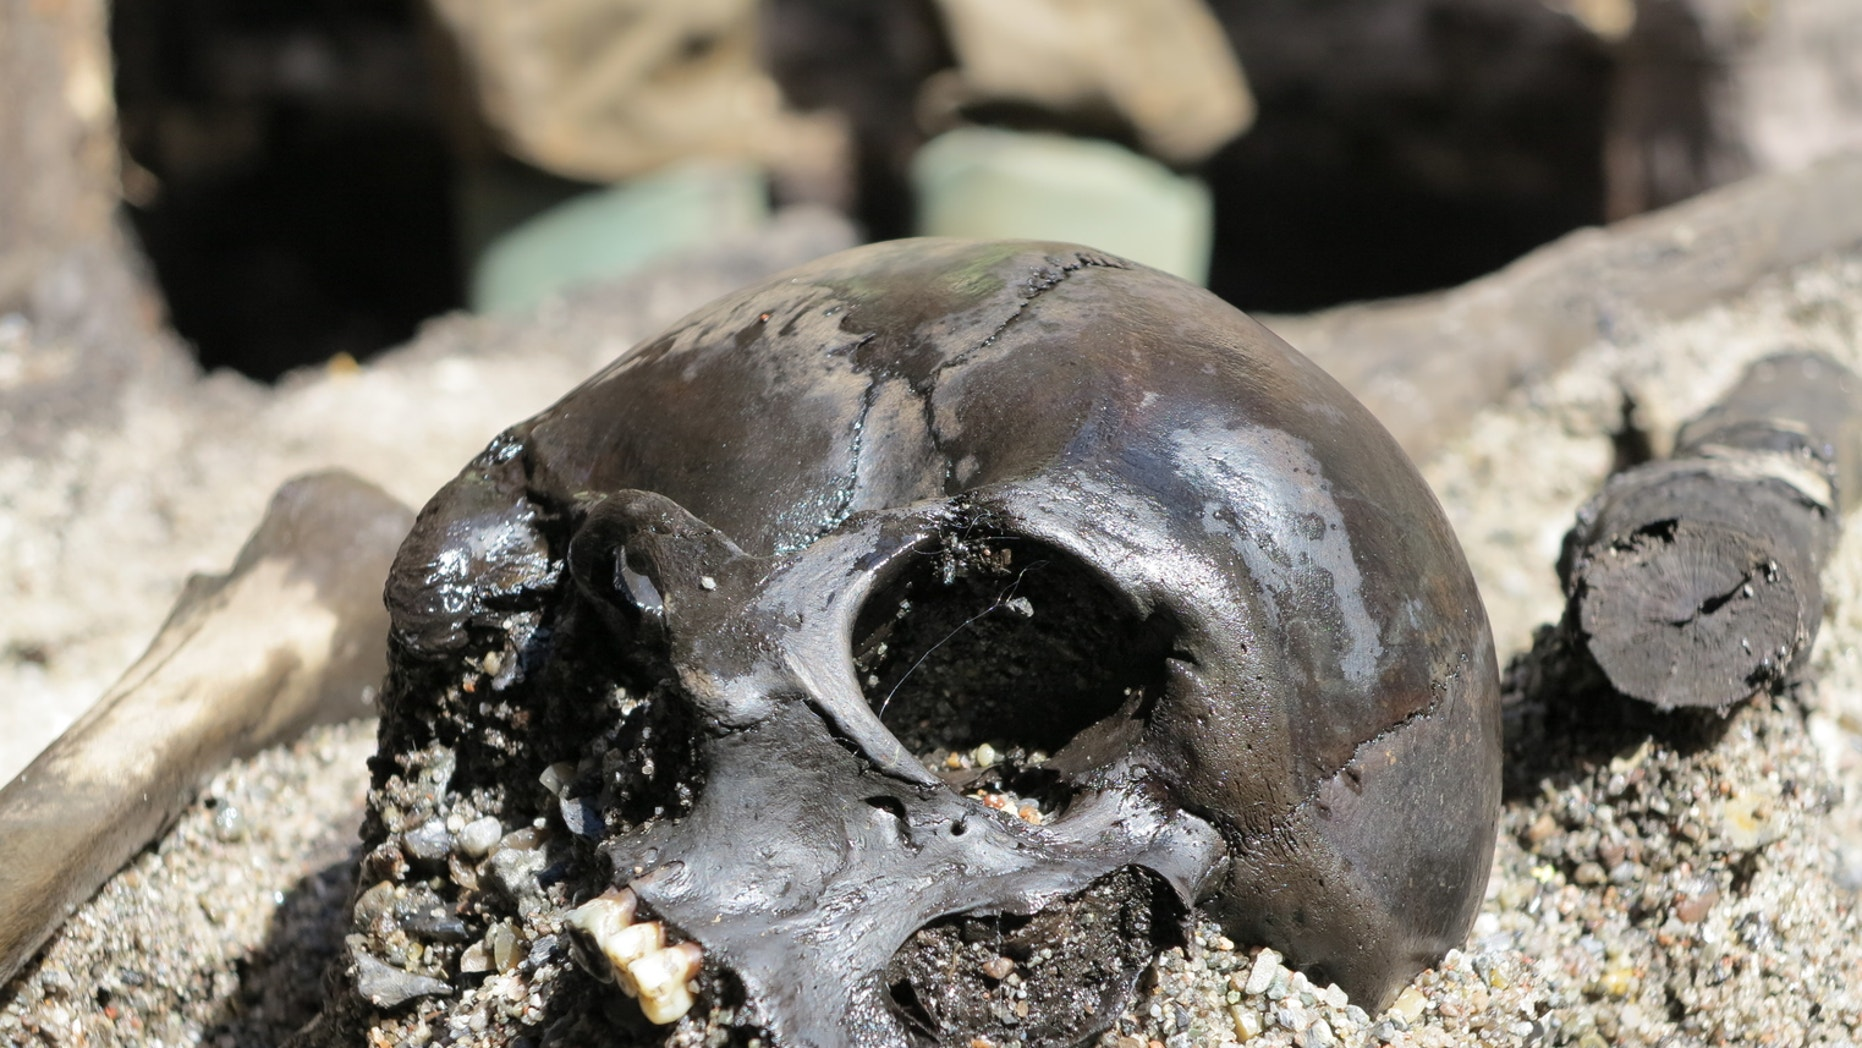 A mass grave uncovered at the Alken Enge wetlands in Jutland, Denmark is giving archaeologists a glimpse into the gruesome post-war practices of Germanic armies.